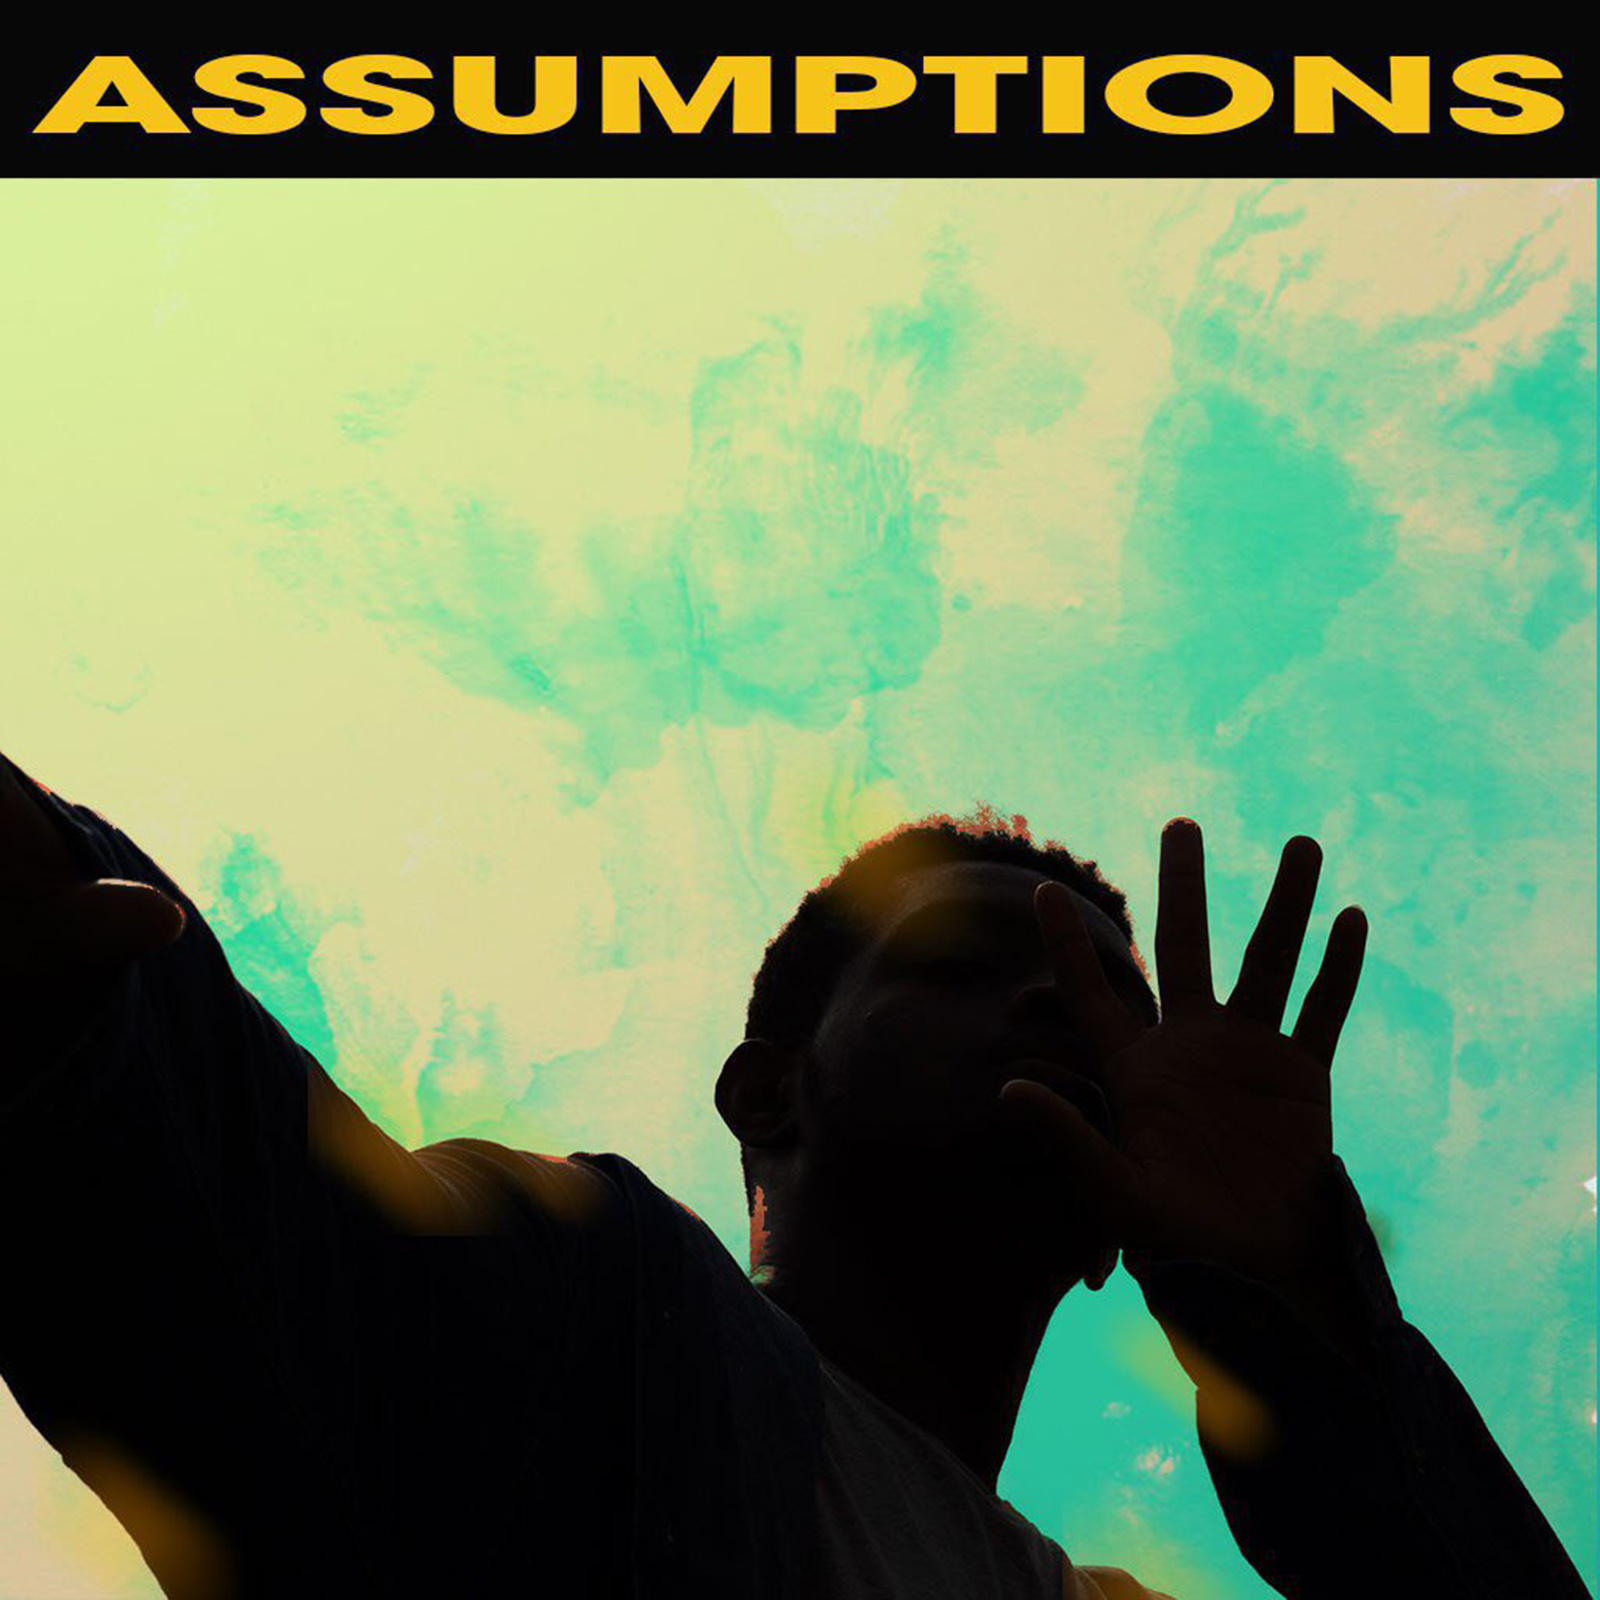 Assumptions by BRYAN THE MENSAH